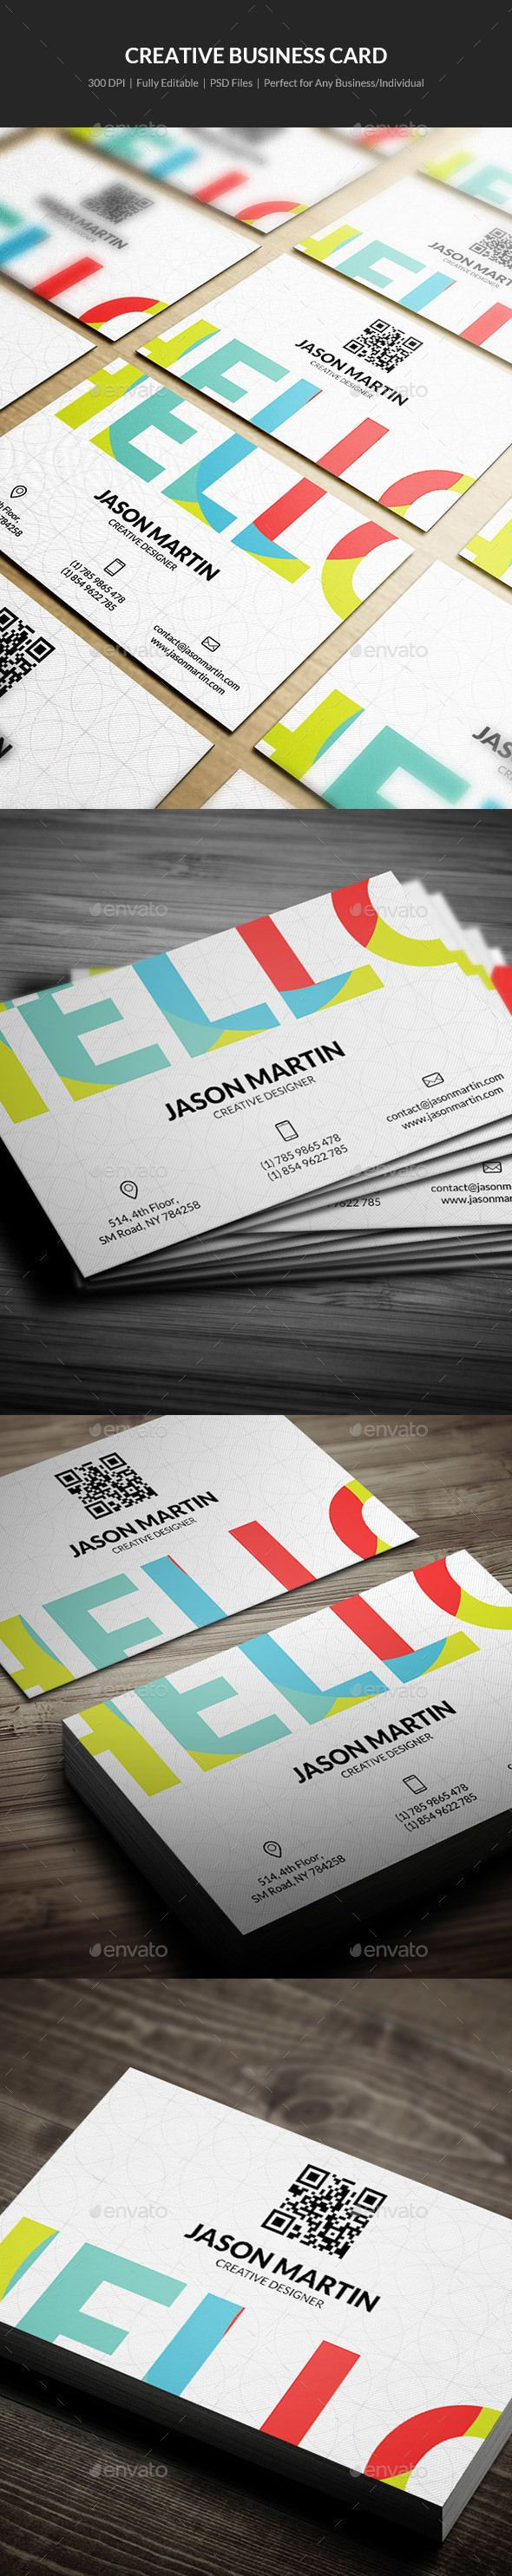 Creative Business Card  02 — Photoshop PSD #cool #beautiful • Available here → https://graphicriver.net/item/creative-business-card-02/13897806?ref=pxcr